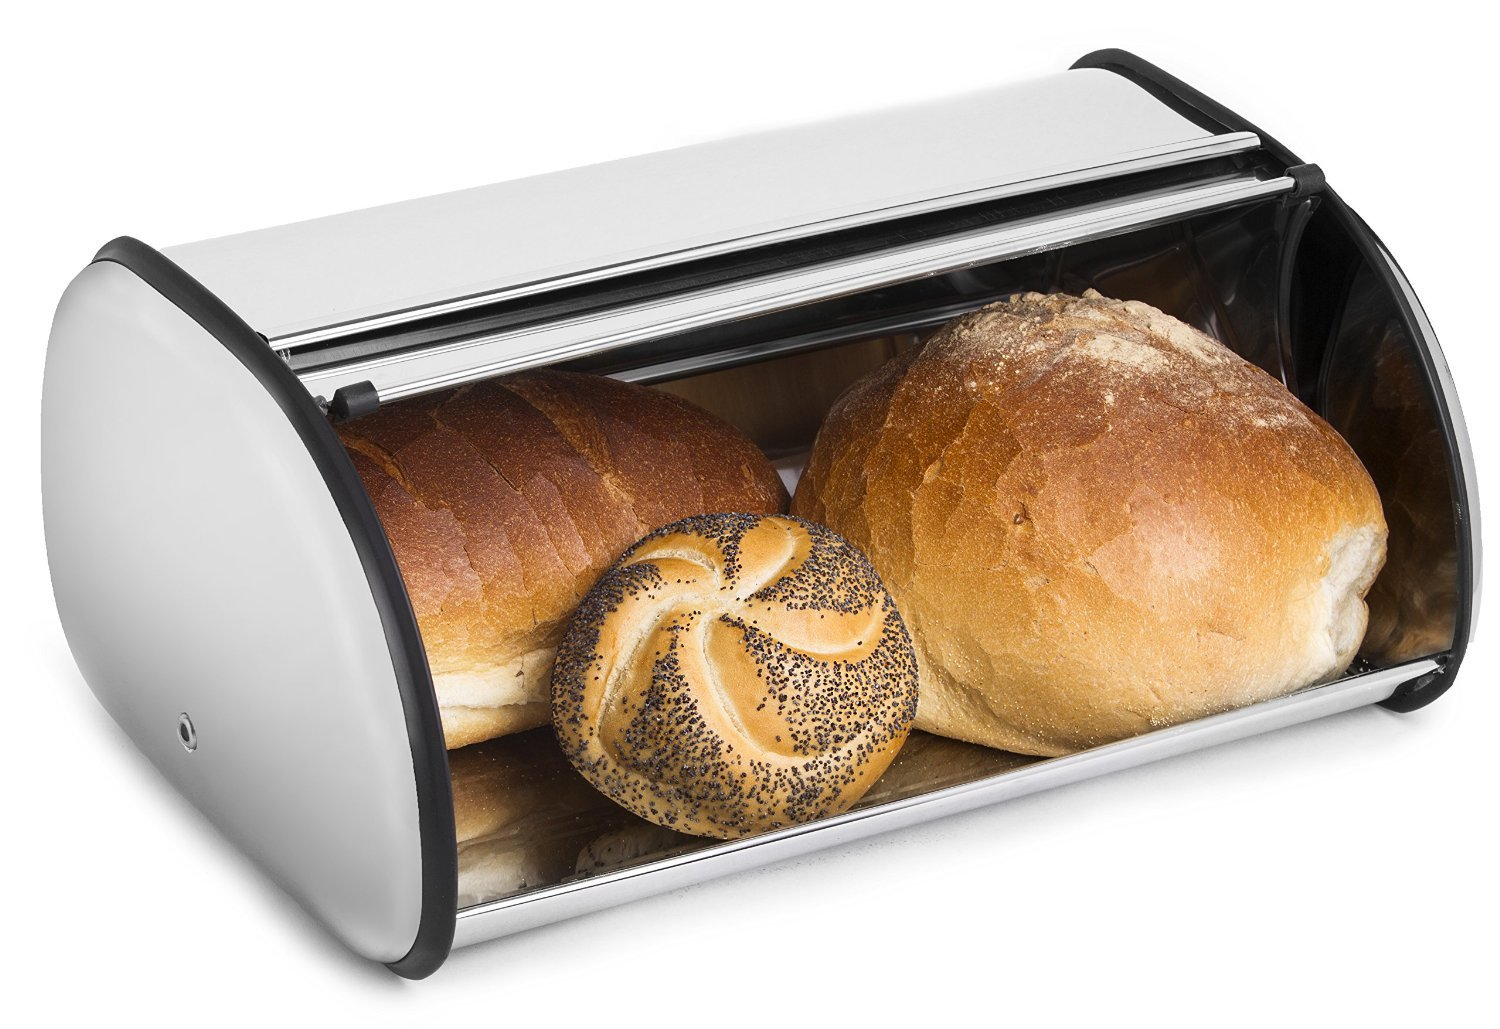 Amazon.com - Greenco Stainless Steel Bread Bin Storage Box Roll up Lid (Stainless steel) -  sc 1 st  Amazon.com & Amazon.com - Greenco Stainless Steel Bread Bin Storage Box Roll up ...